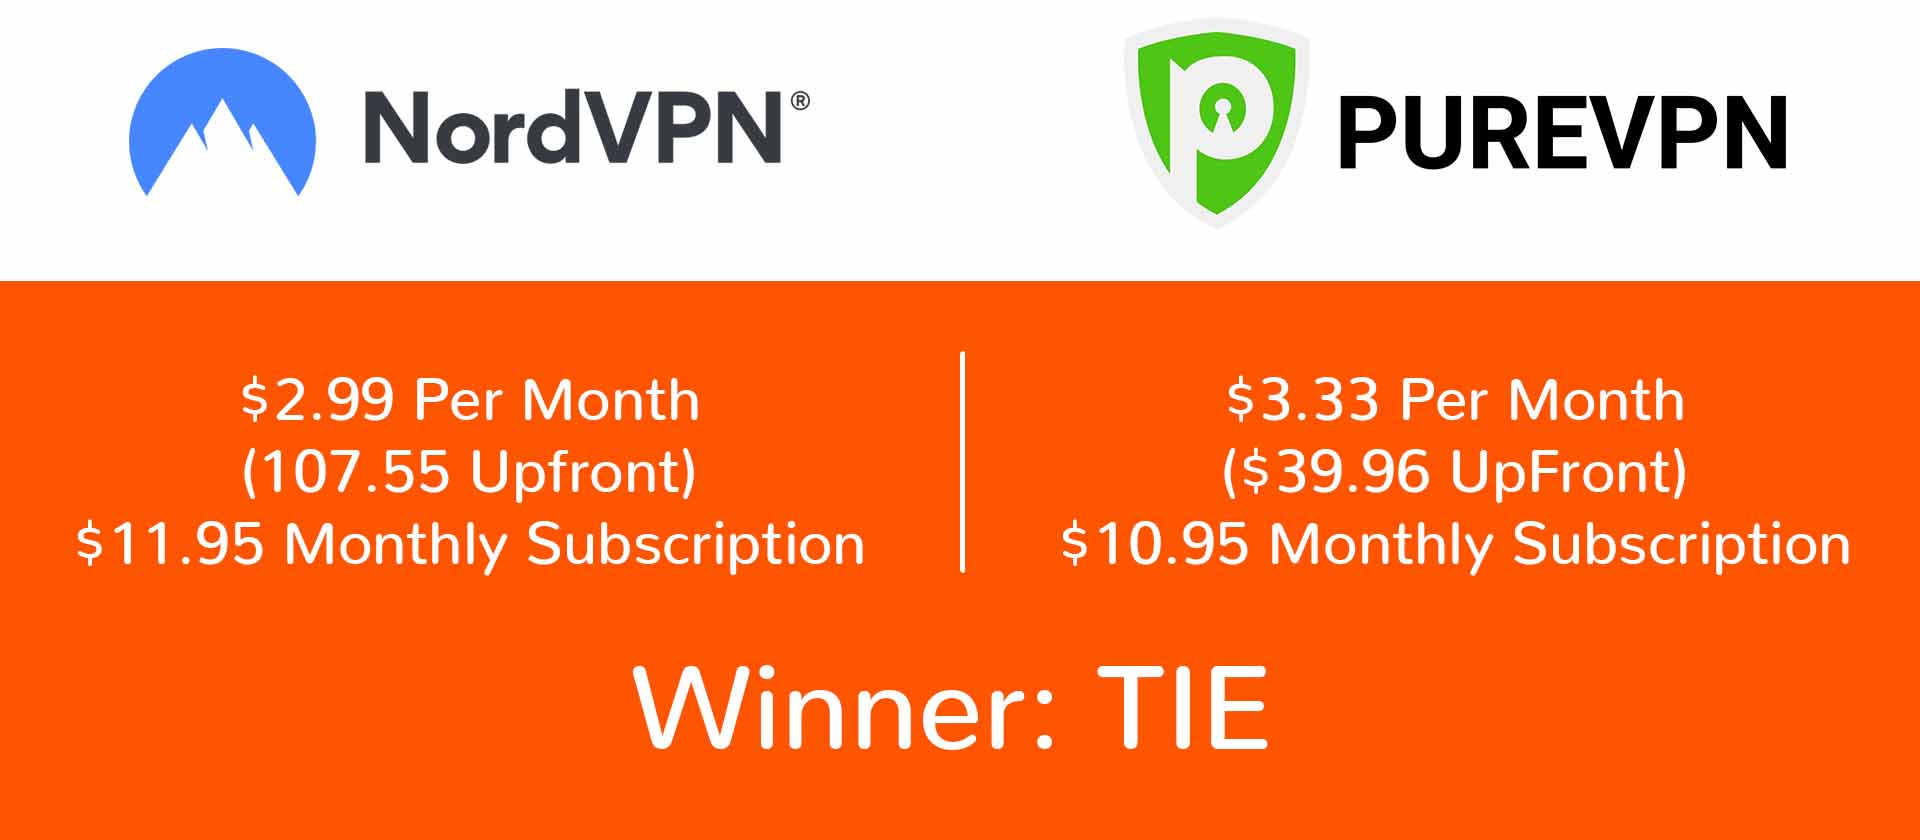 nordvpn purevpn price breakdown